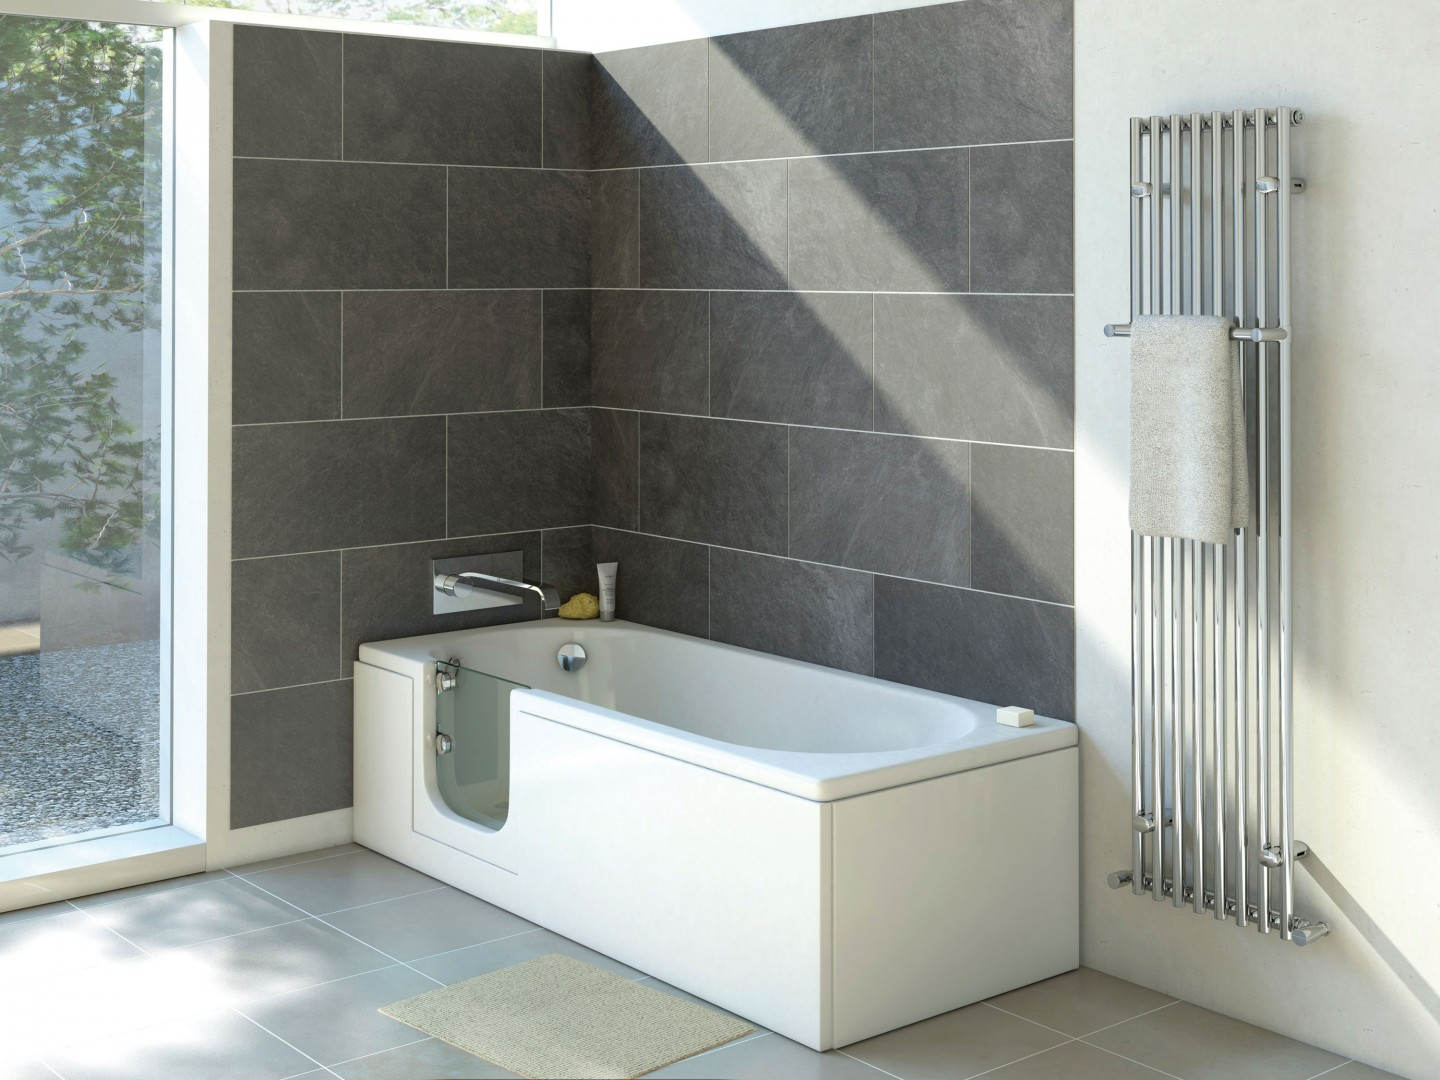 Cascade-Easy-Access-Bath-Roomset_1.jpg